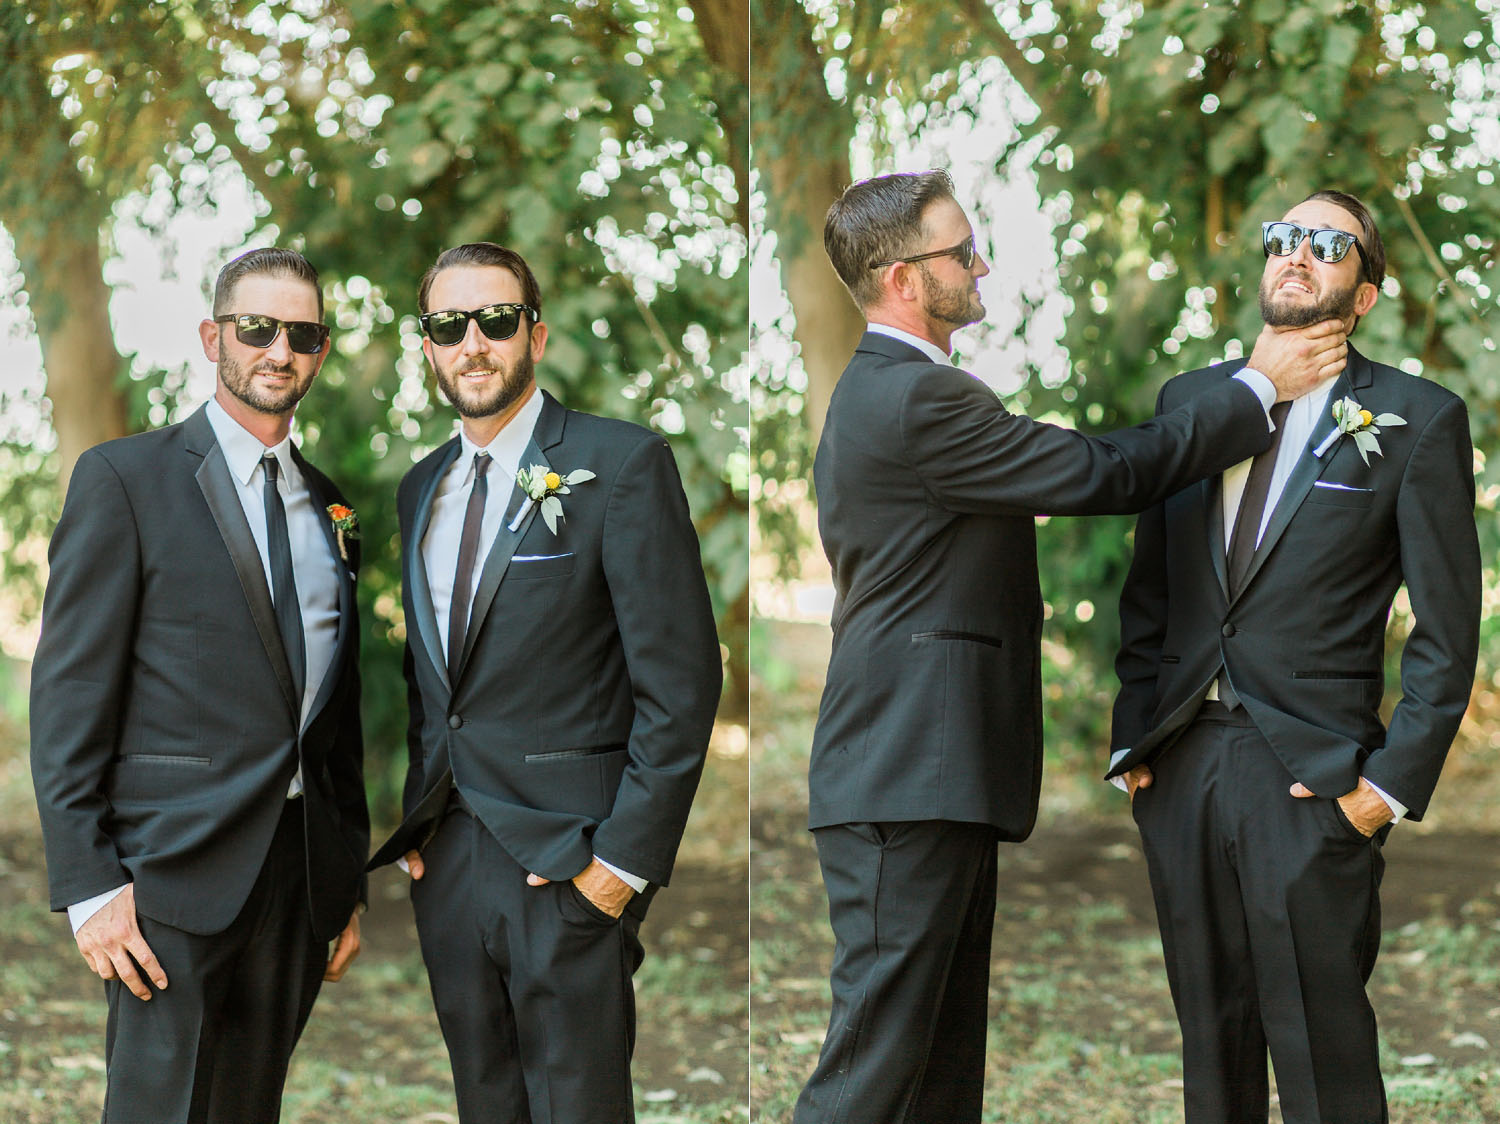 The Photege - Elegant Boho Wedding on Suburu Farm in Bakersfield California- Cassie and Darin Buoni-2997